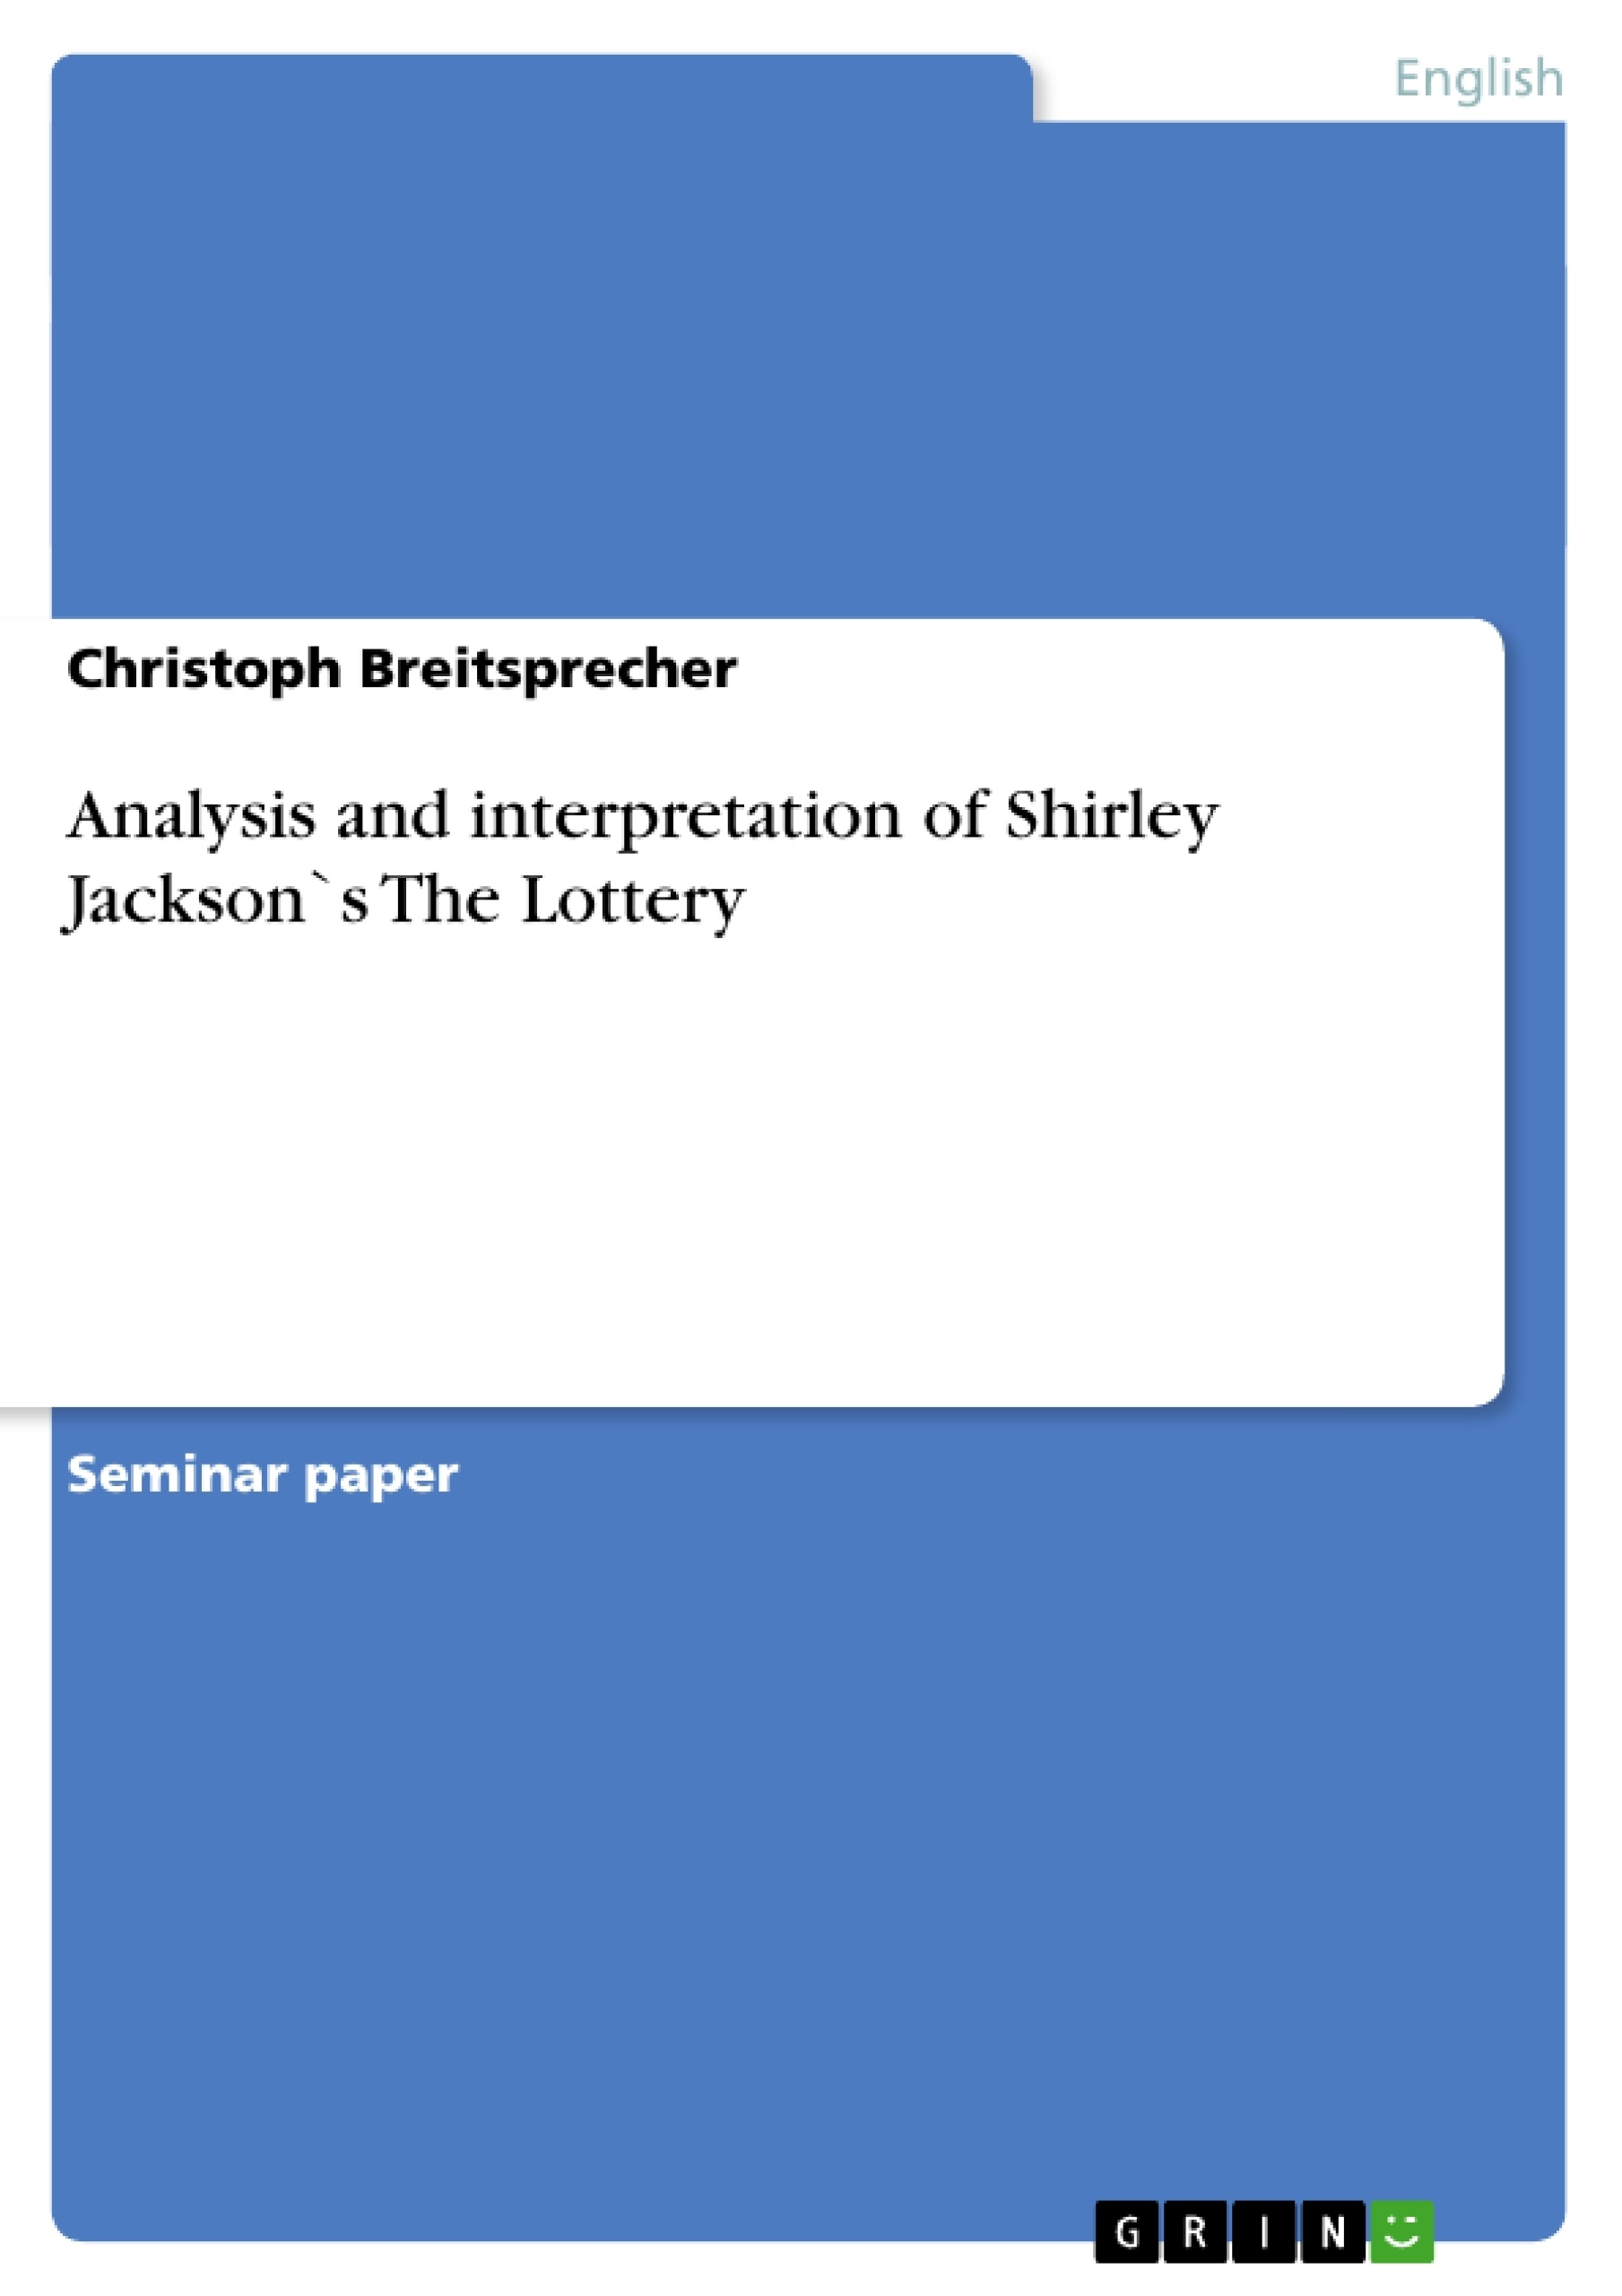 analysis and interpretation of shirley jackson`s the lottery analysis and interpretation of shirley jackson`s the lottery publish your master s thesis bachelor s thesis essay or term paper